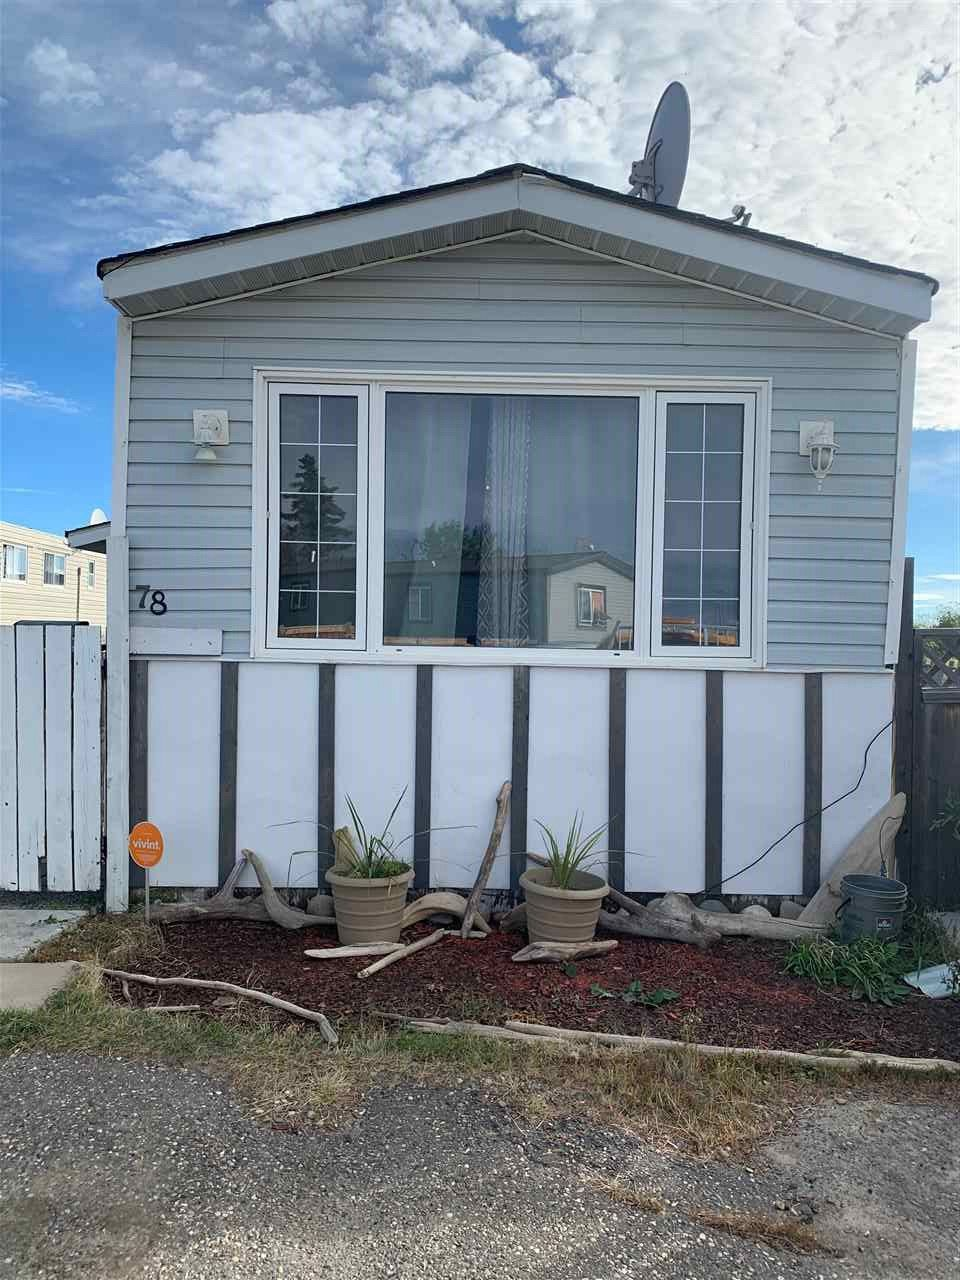 """Photo 1: Photos: 78 8420 ALASKA Road in Fort St. John: Fort St. John - City SE Manufactured Home for sale in """"PEACE COUNTRY"""" (Fort St. John (Zone 60))  : MLS®# R2495486"""